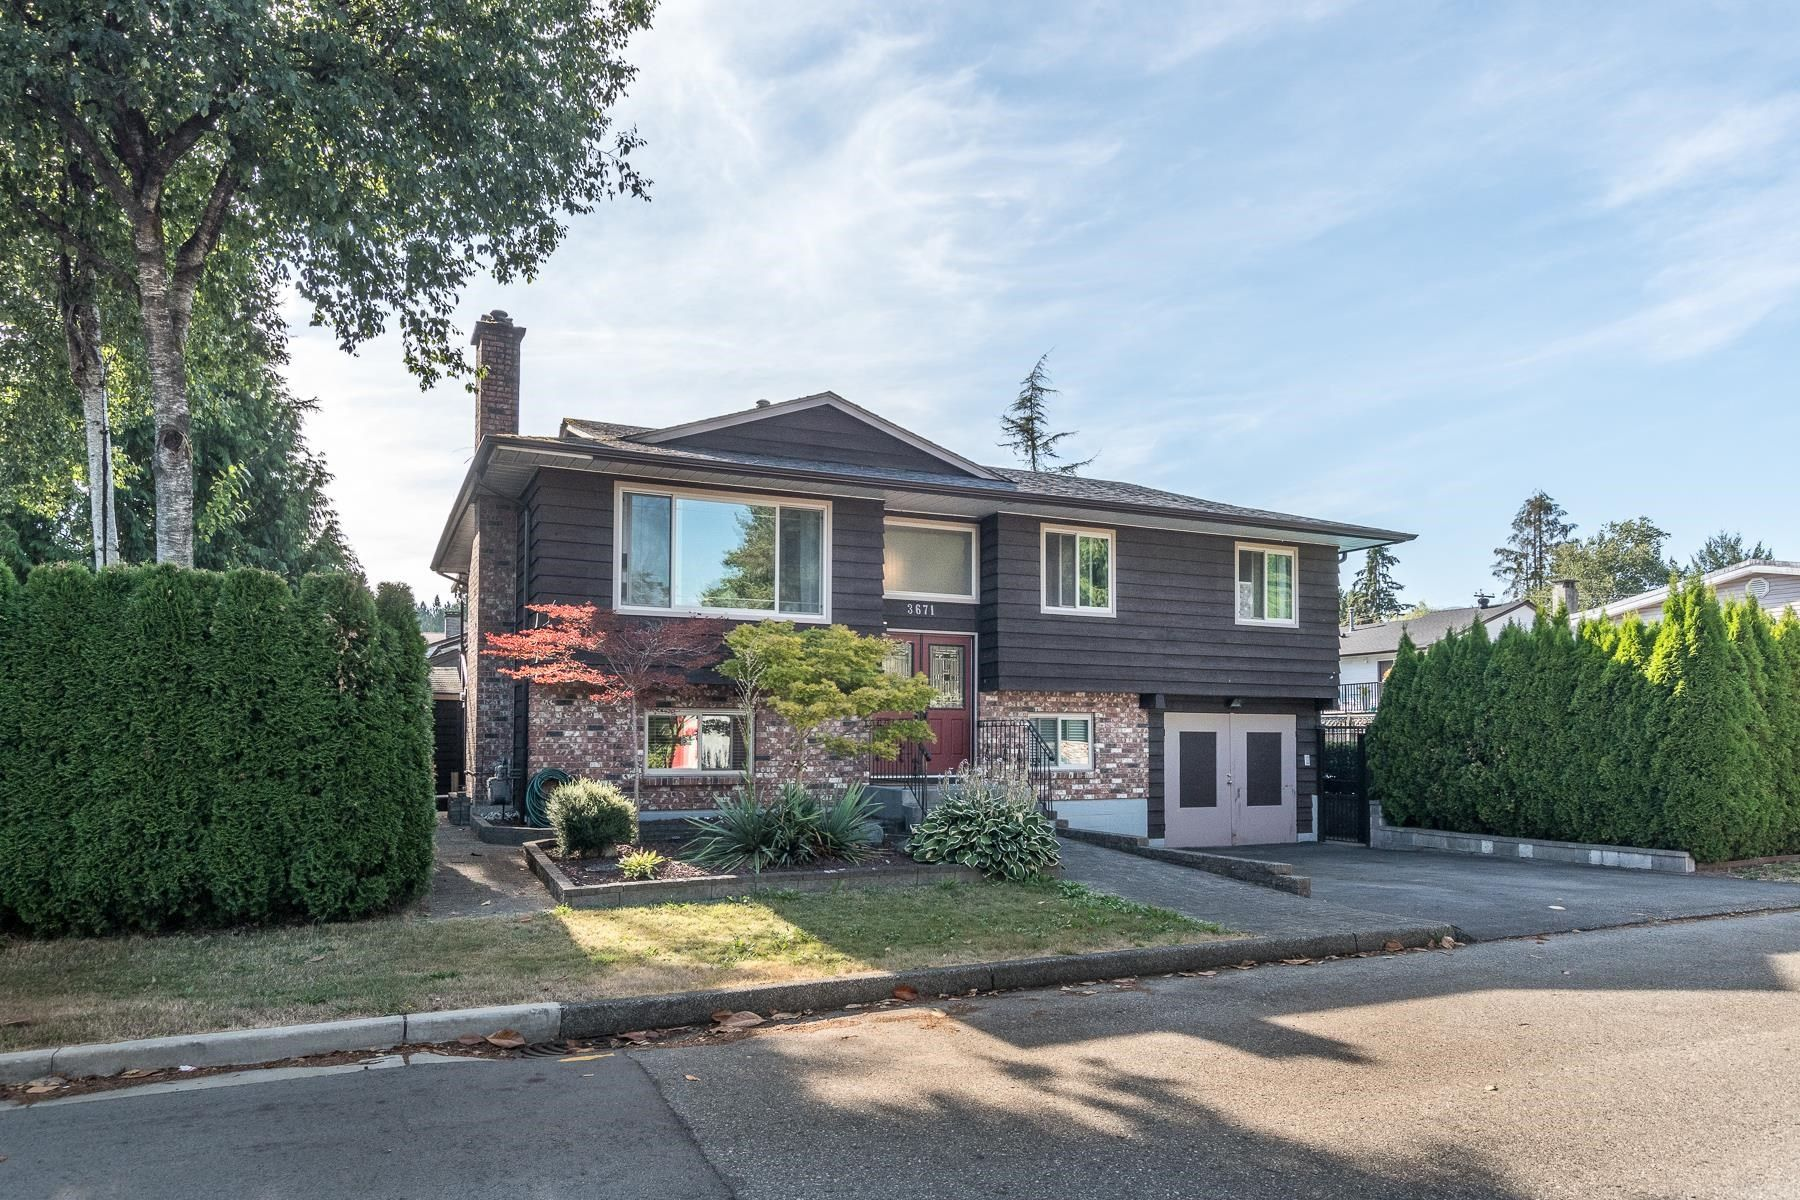 Photo 2: Photos: 3671 SOMERSET Street in Port Coquitlam: Lincoln Park PQ House for sale : MLS®# R2610216